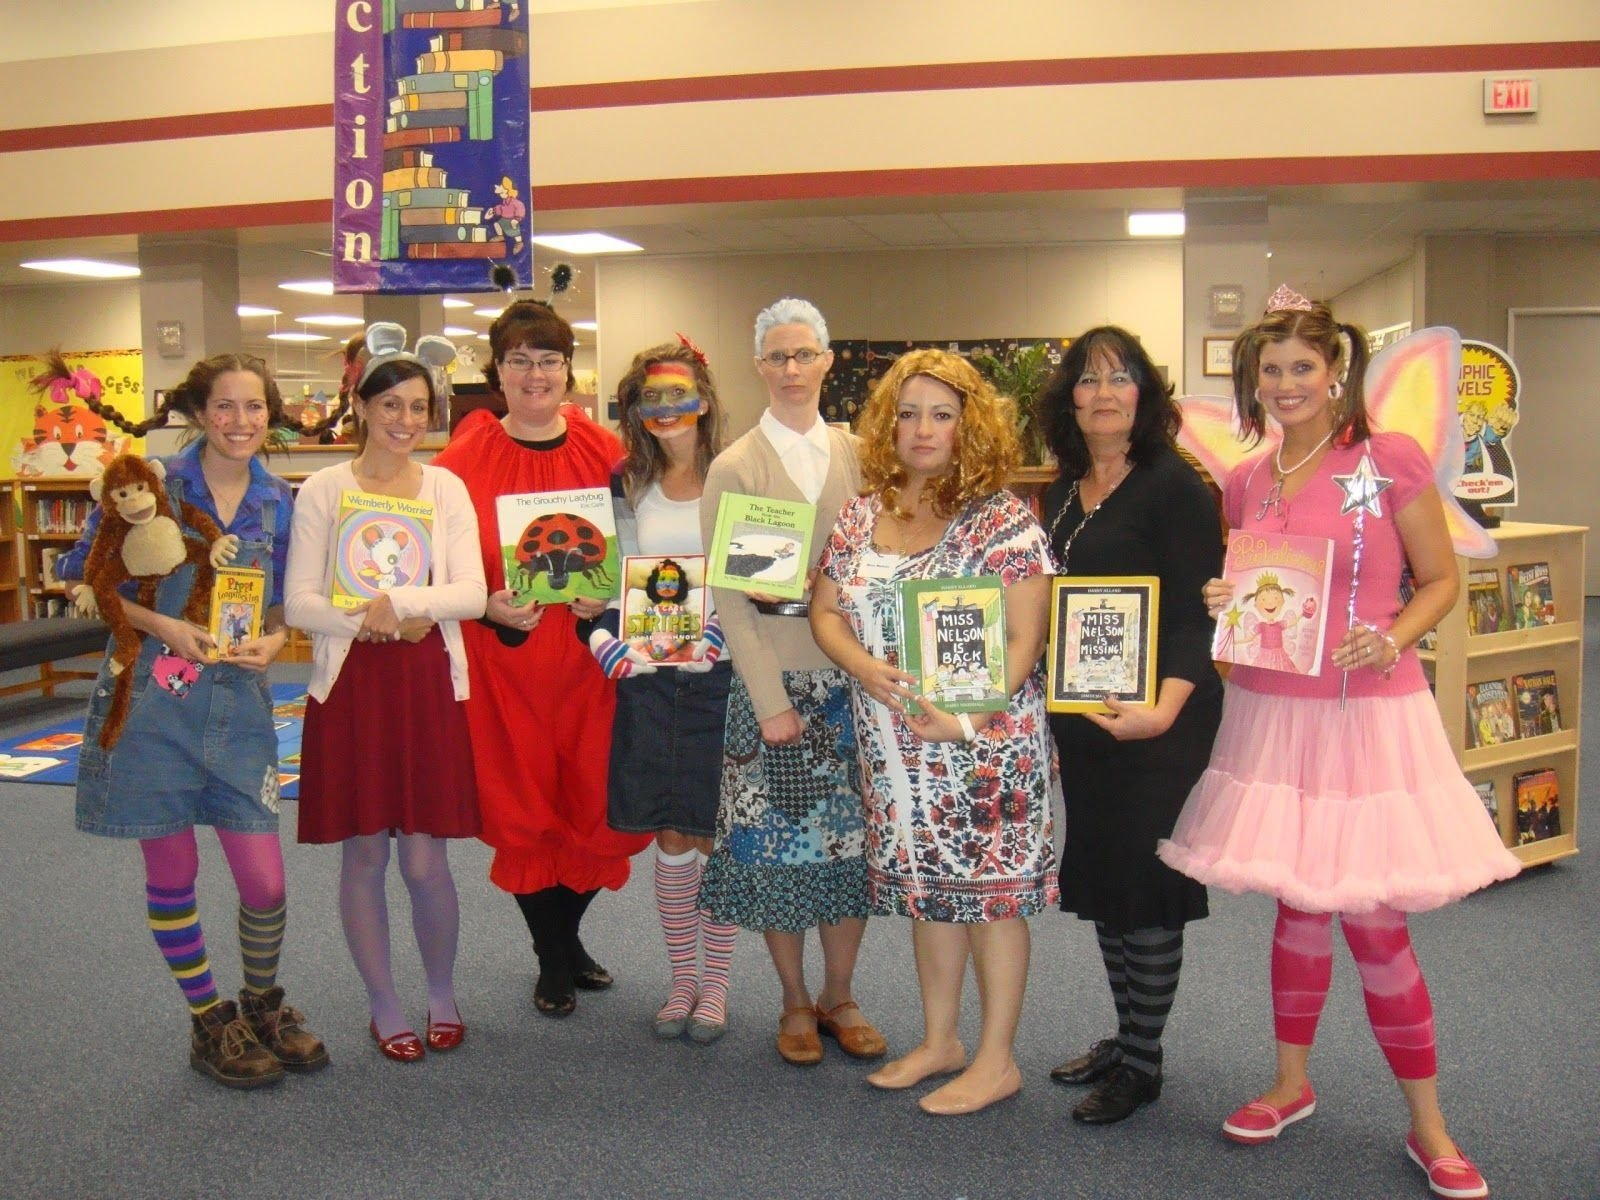 10 Fabulous Storybook Character Dress Up Ideas dress like book character book character costumes halloween 1 2020